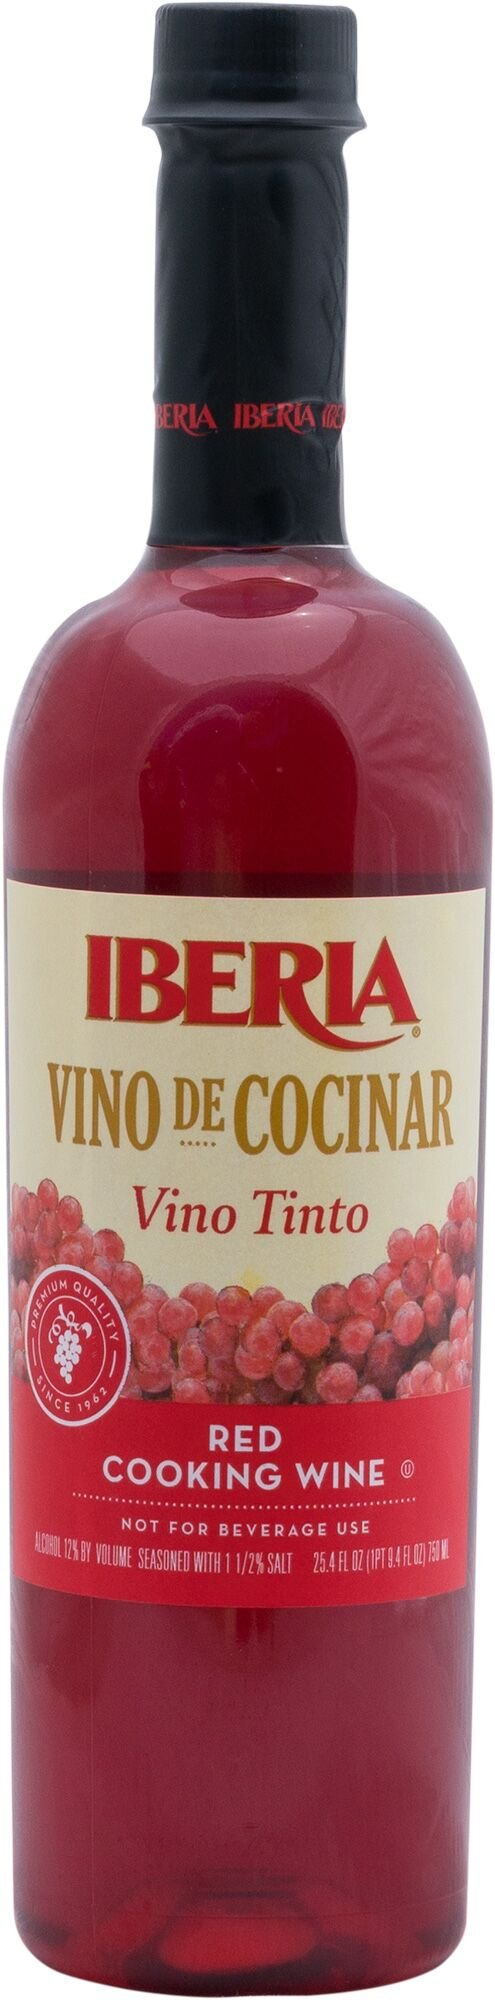 Iberia Red Cooking Wine, 25.4 Ounce (Pack of 12)